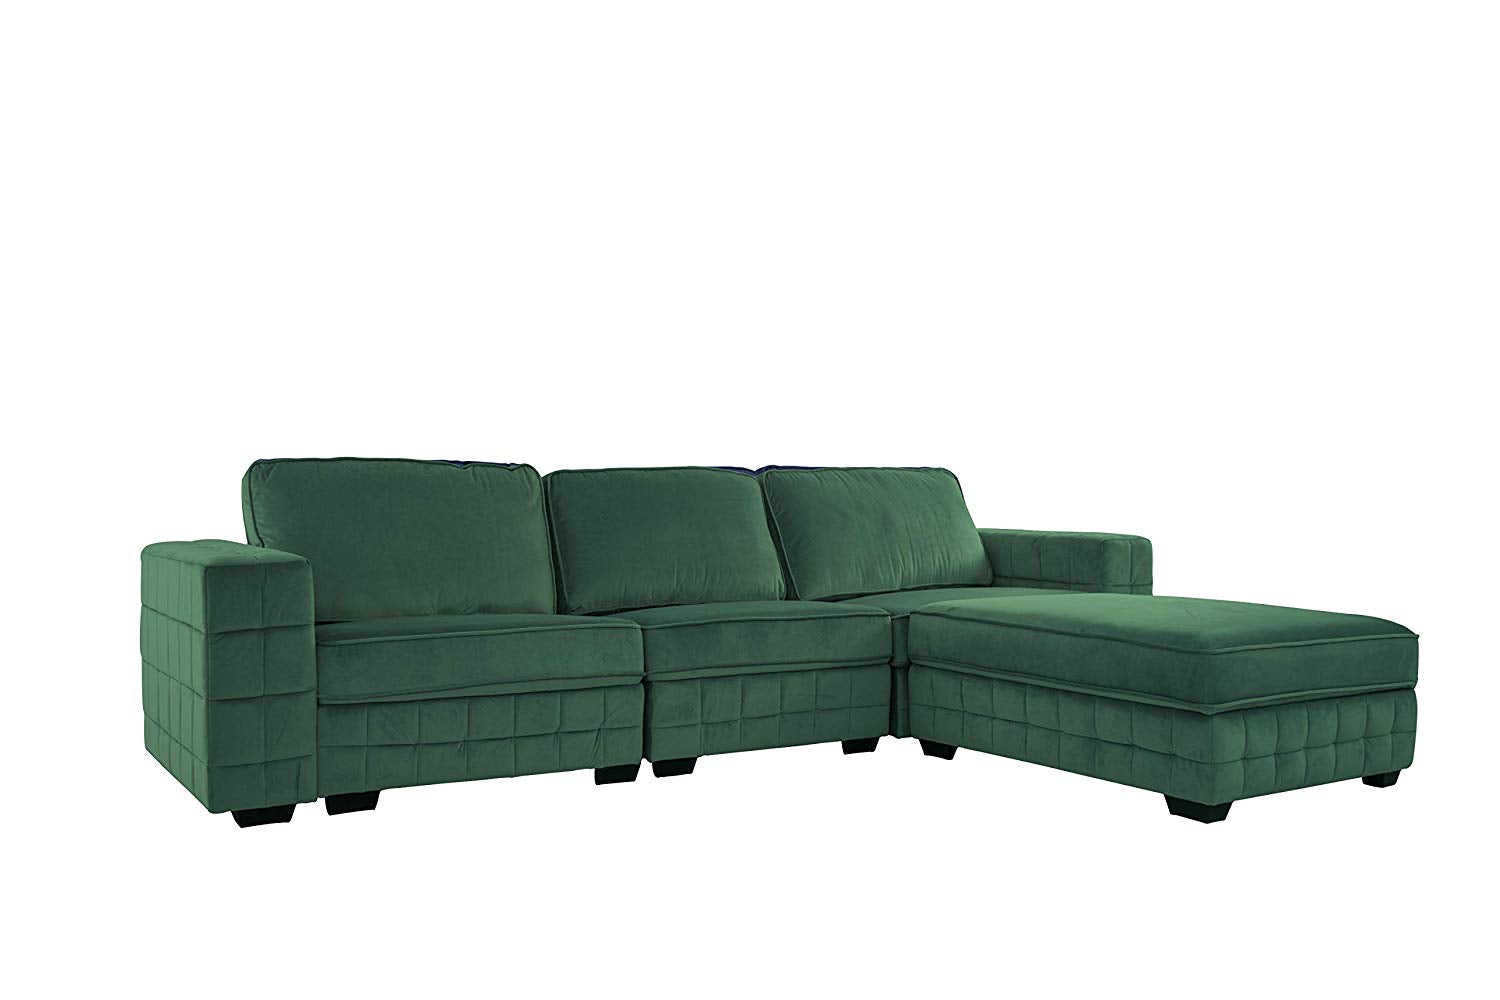 Peachy Upholstered Velvet Sectional Sofa 111 W Inches Green Gmtry Best Dining Table And Chair Ideas Images Gmtryco